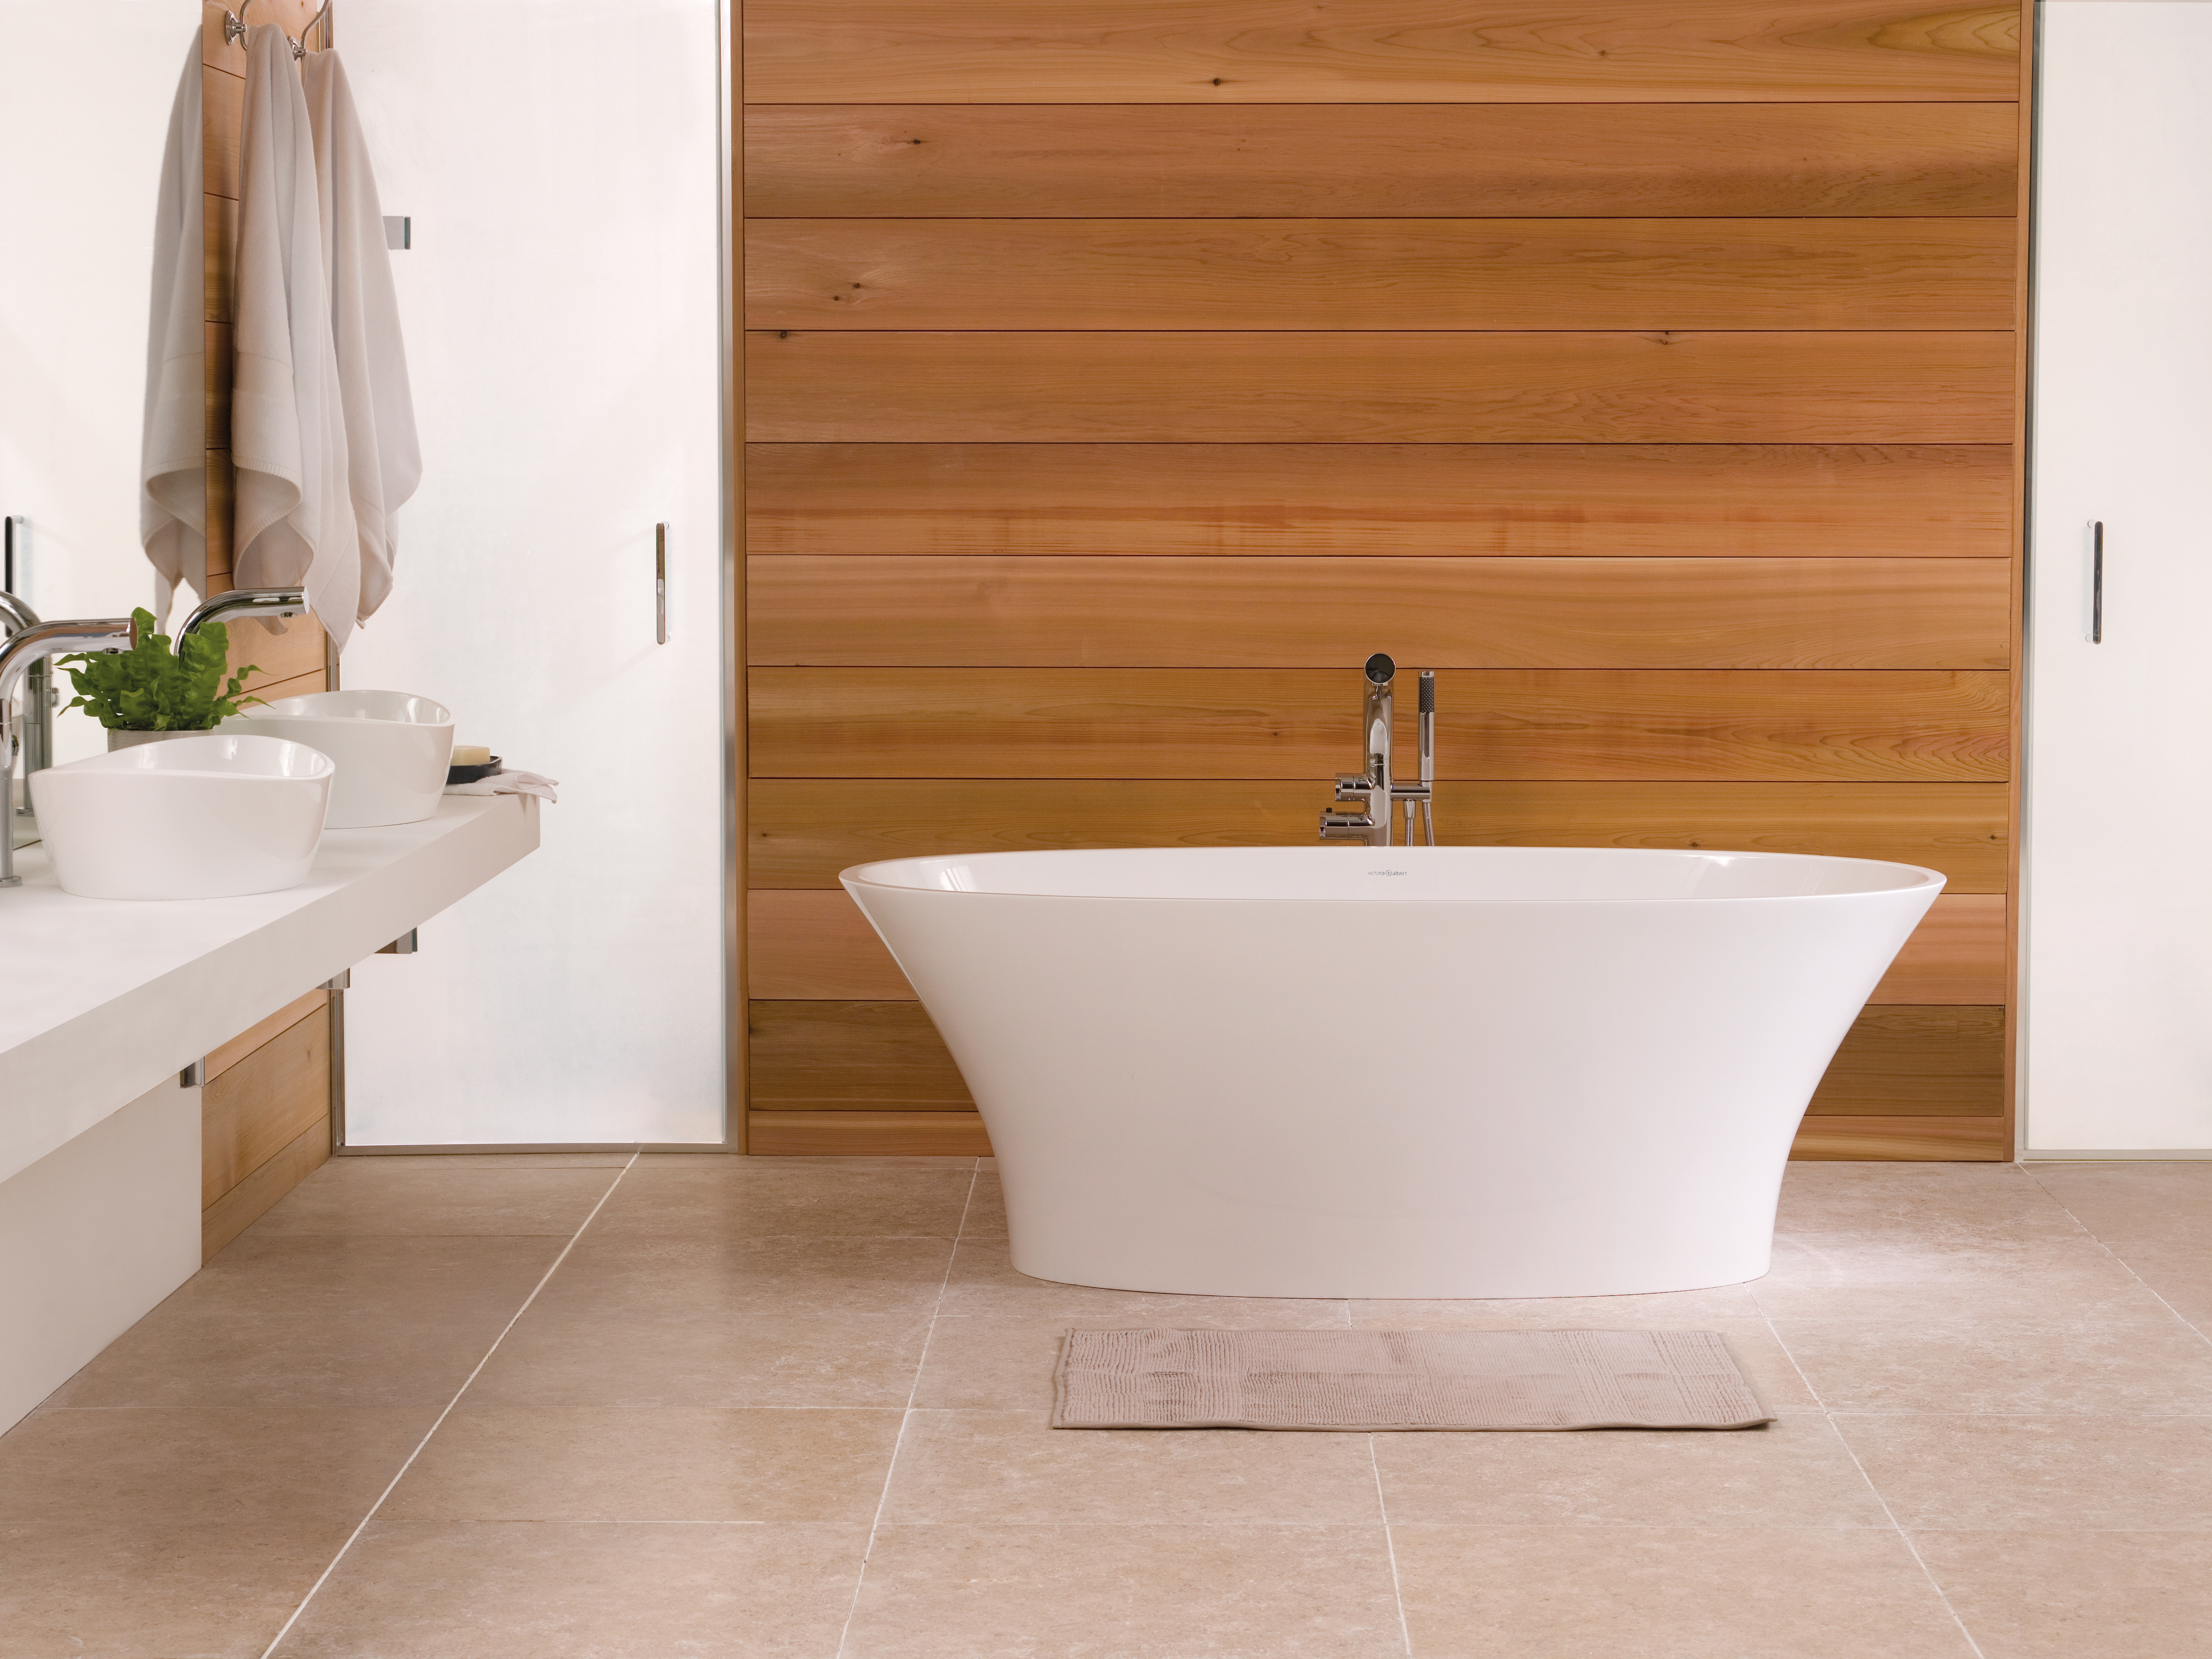 Bathrooms Archives - Building Guide - house design and building tips ...